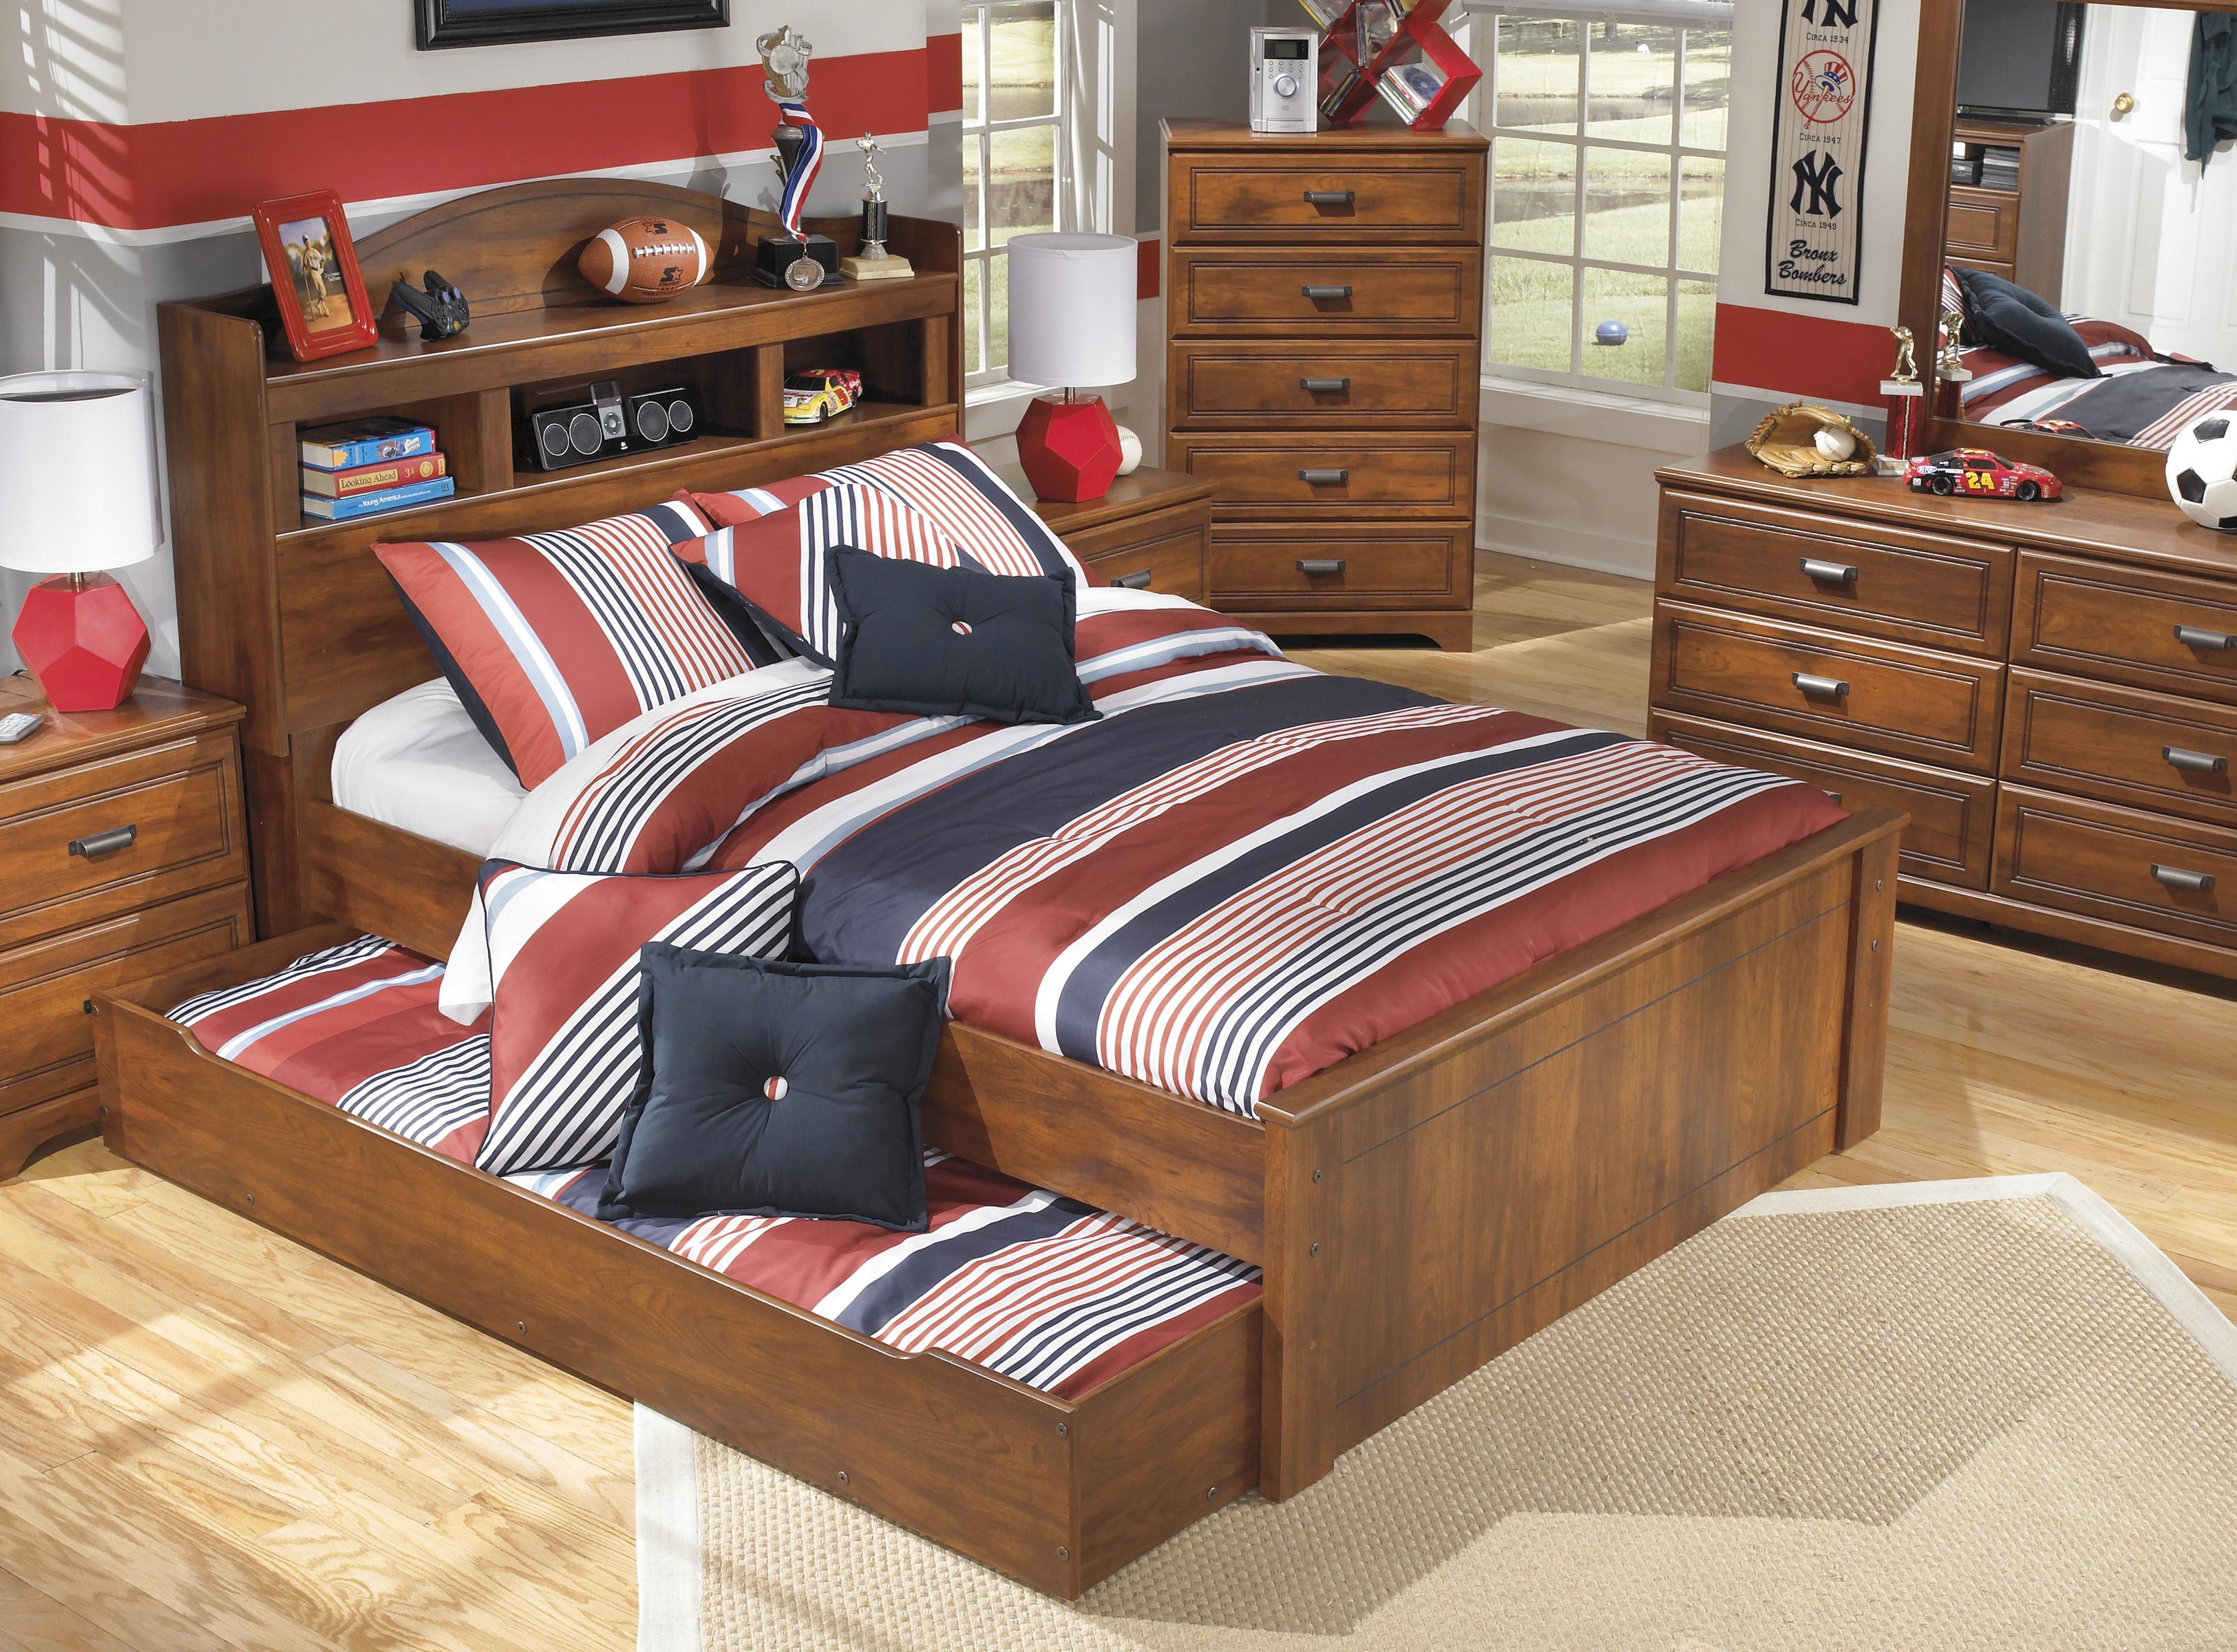 Full Bookcase Bed With Trundle Under Bed Storage Unit By Signature Design By Ashley Wolf And